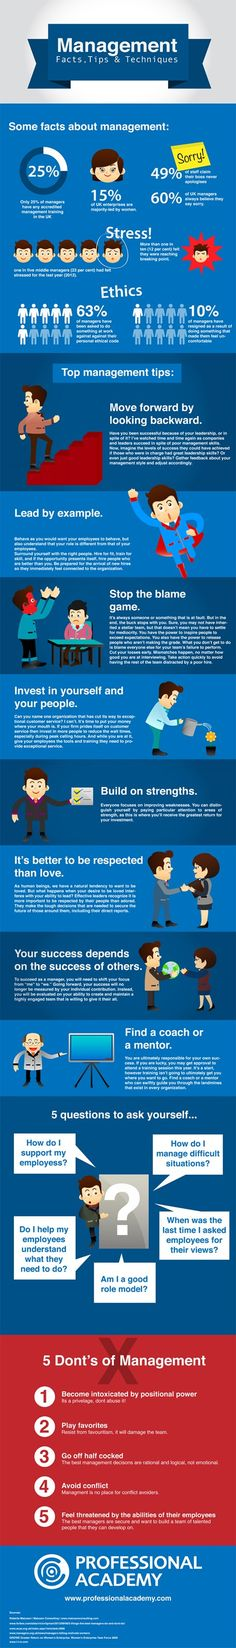 Infographic Blog on Top Management & Leadership Tips • Professional Academy